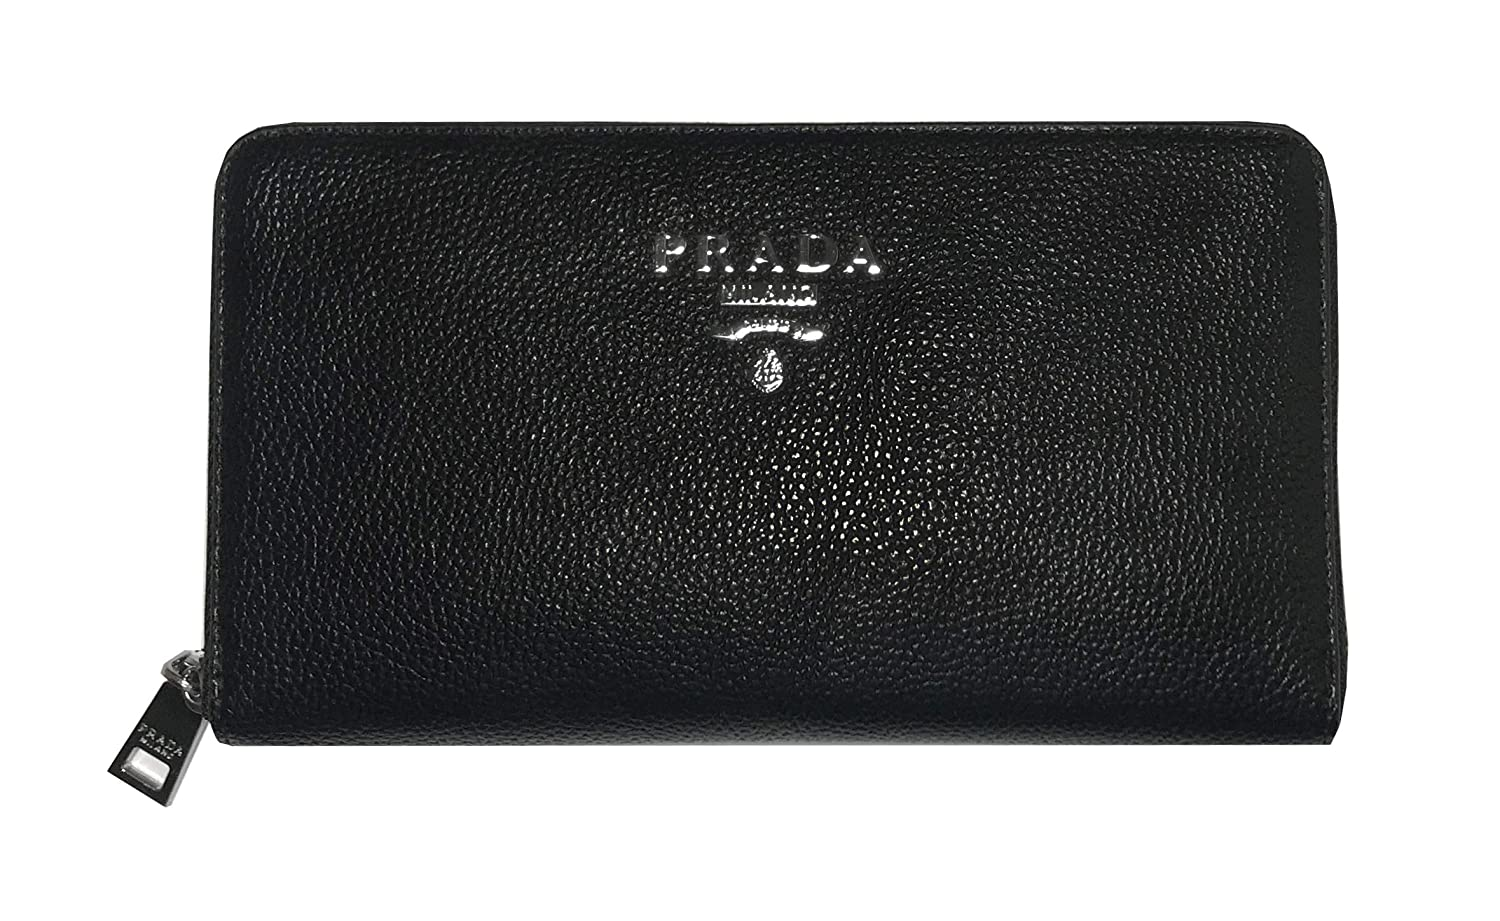 a4aa7b0705fc Amazon.com: Wallet PRADA style large capacity WALLET with cash, cards and  coins compartments 100% Leather GERNIK: GerNik